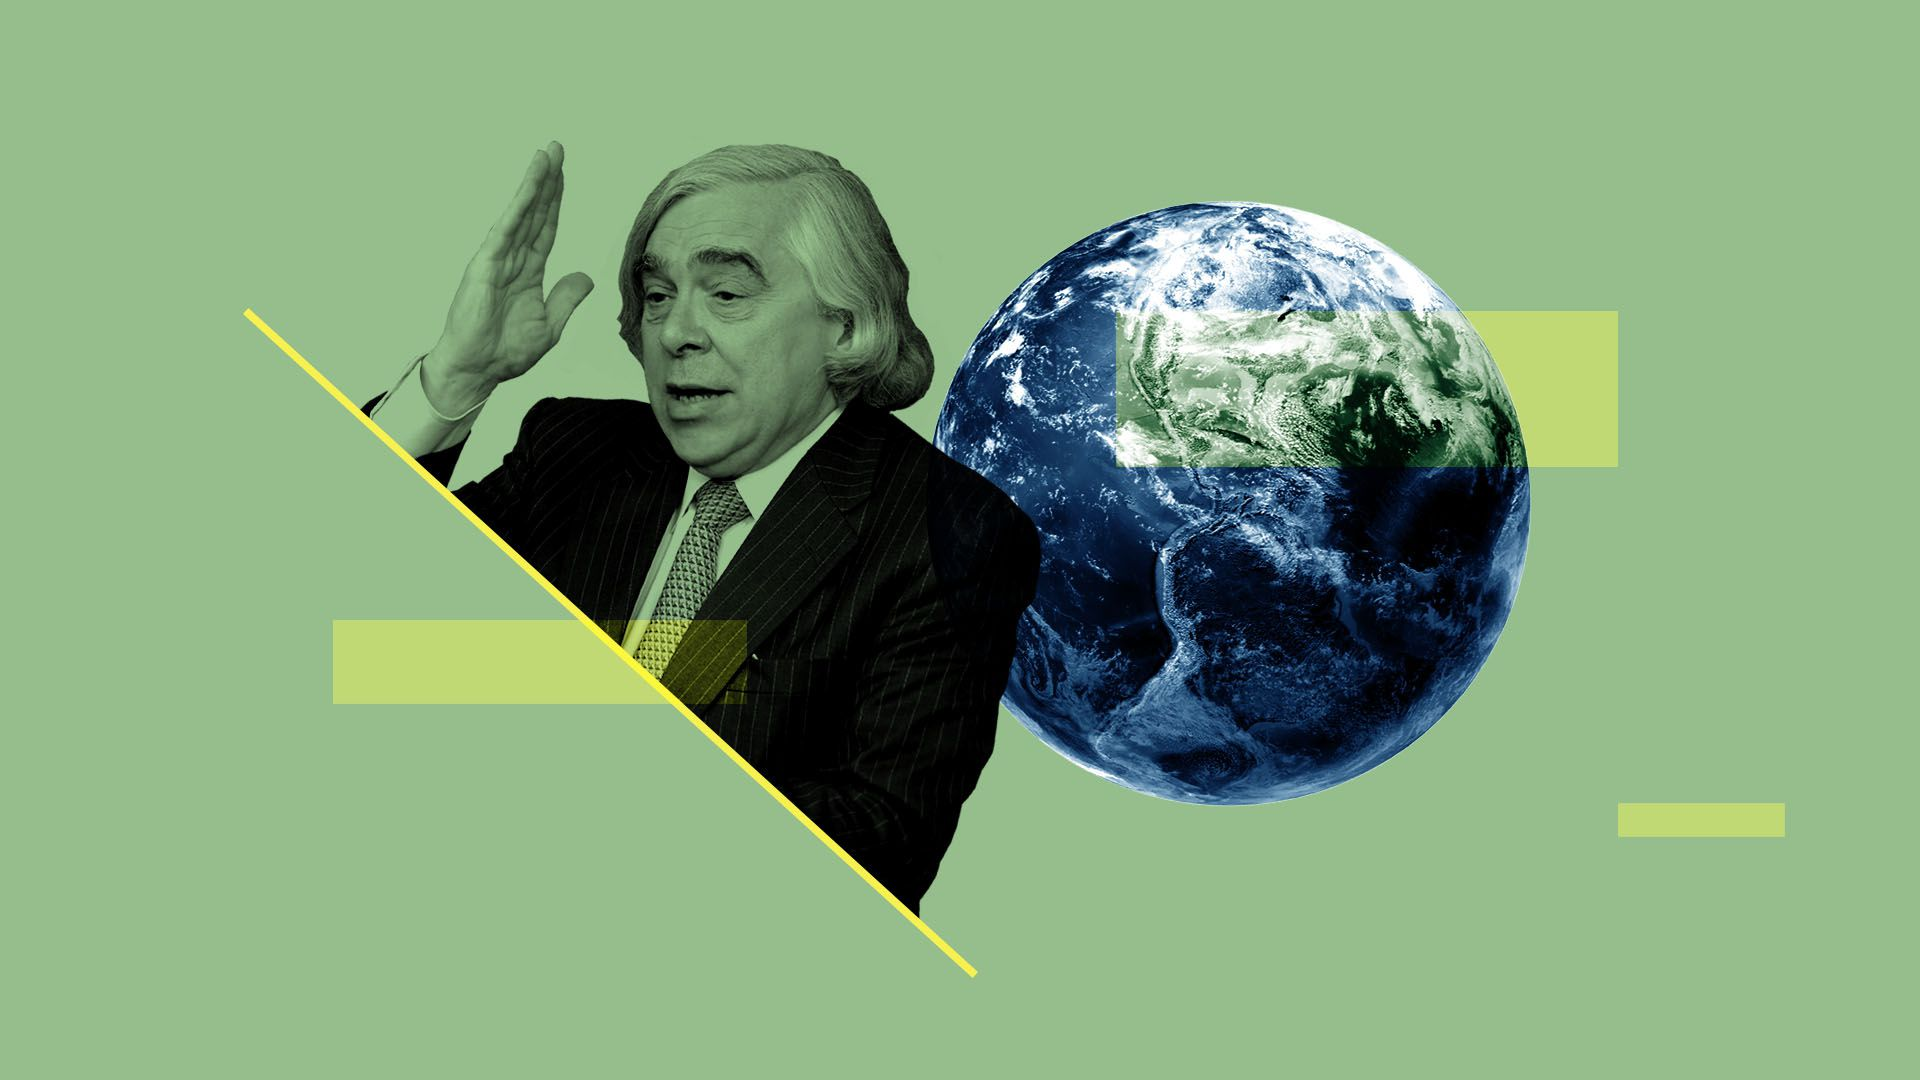 Illustrated collage Ernest Moniz and the planet earth